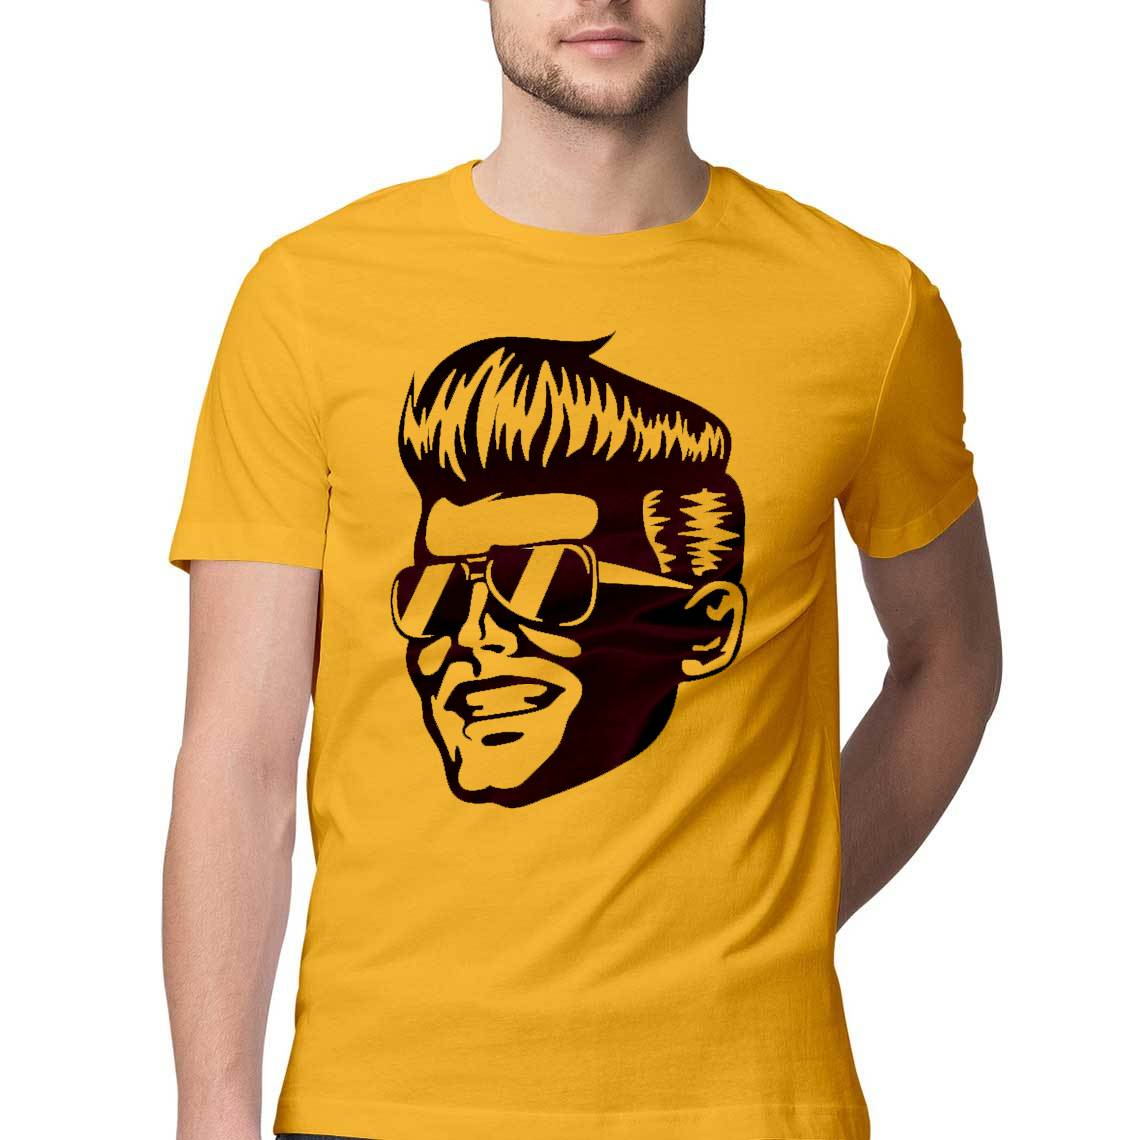 Buy this Cool Dude T-shirt for yourself or gift your loved ones. T-shirt is available in 7 colors & 8 sizes. 1)100% Cotton 2)Free delivery & COD. (Limited Stock) Buy Now -  [Retweet to help]  #shopping #shop #fashion #onlineshopping #sale #newcollection